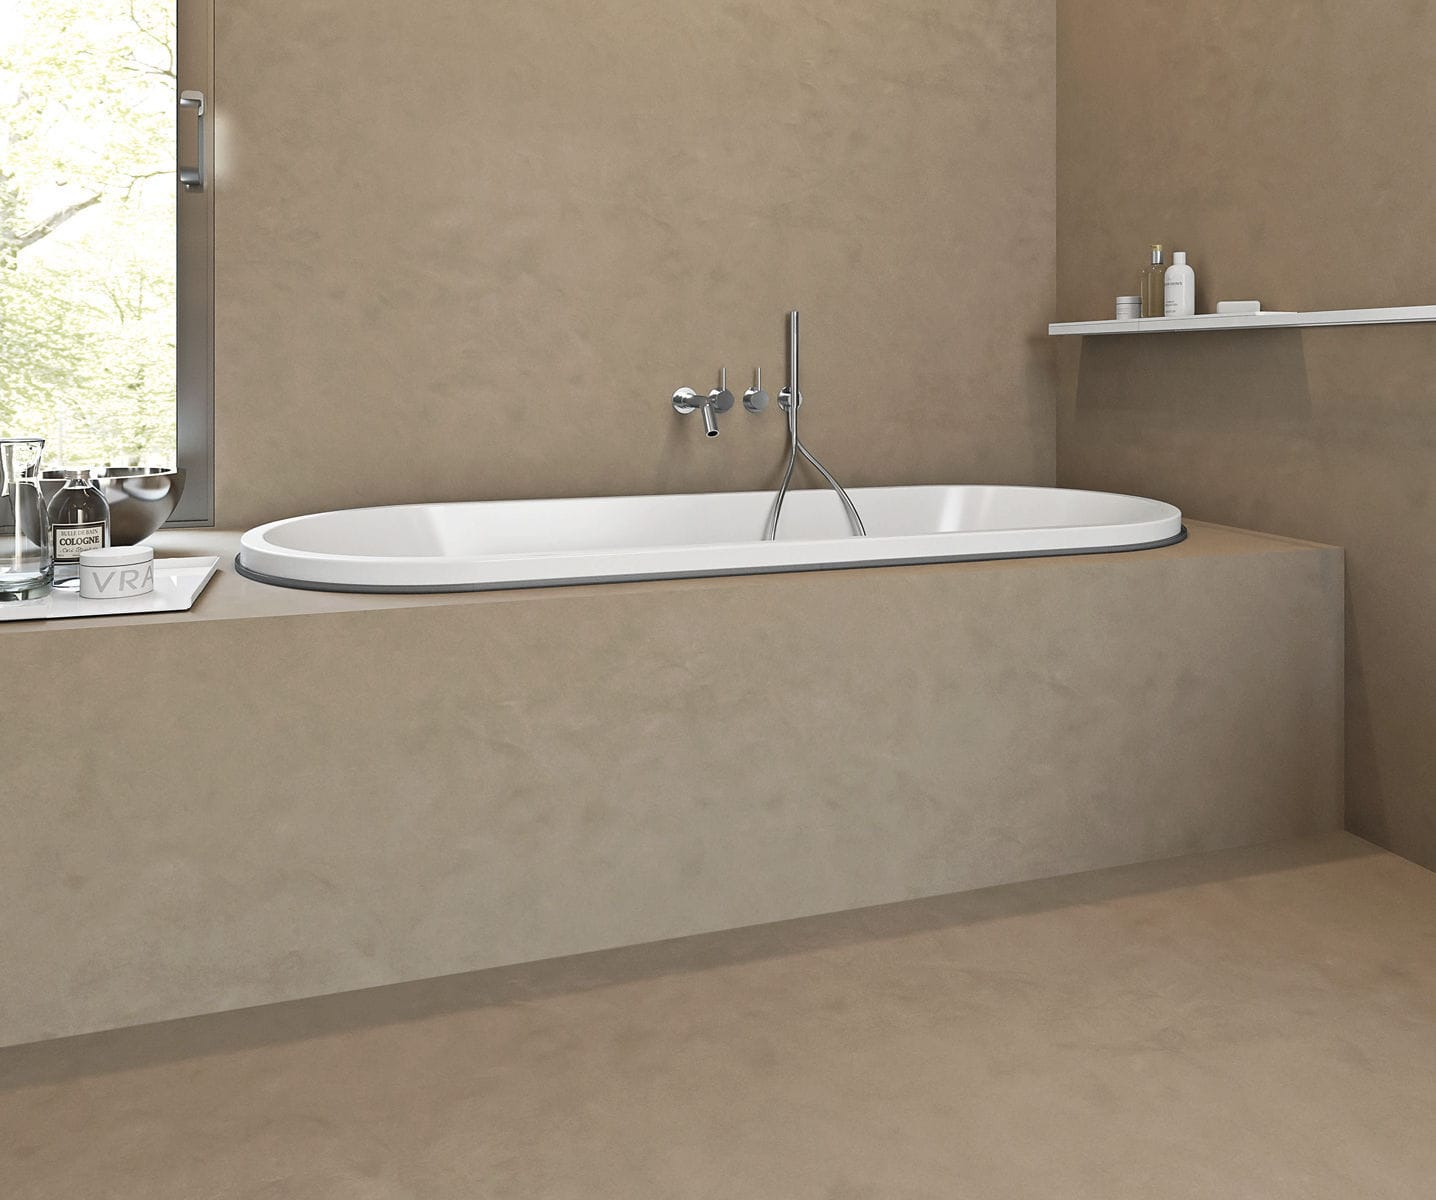 Oval bathtub / Corian® / resin / marble - STREET - MAKRO